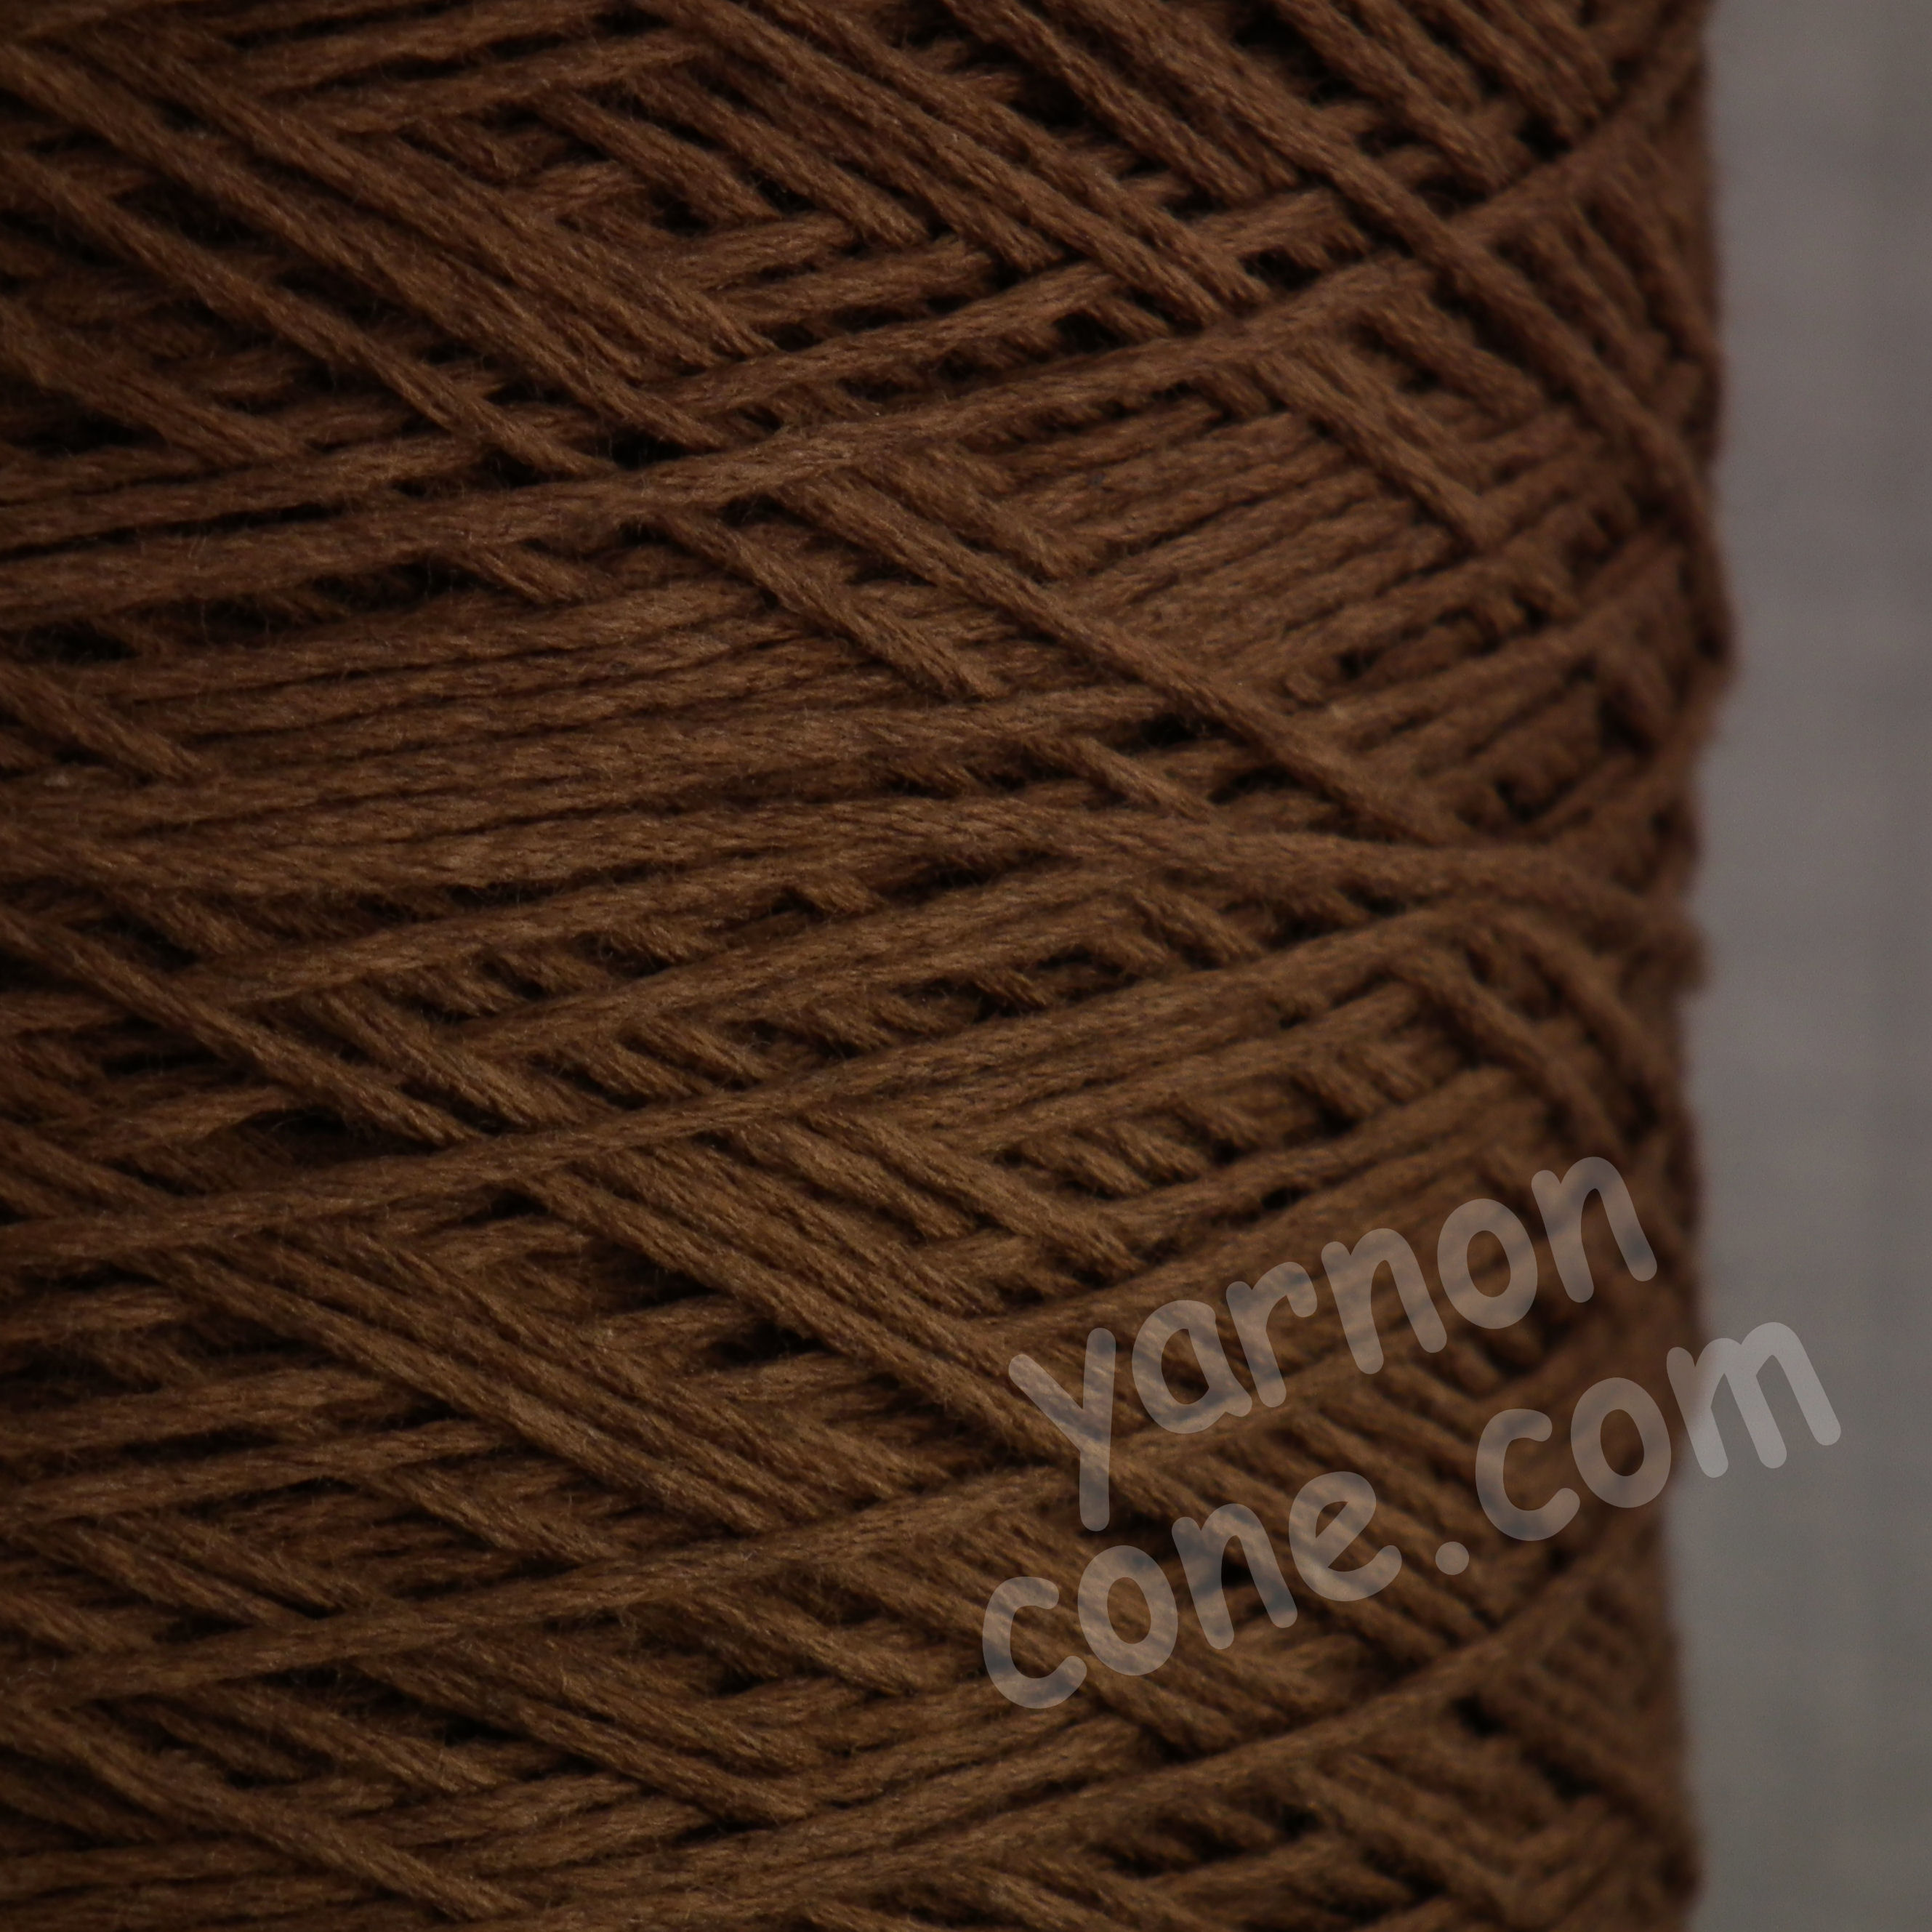 cashmere cotton soft yarn on cone 4 ply knitting weaving crochet luxury UK chocolate brown